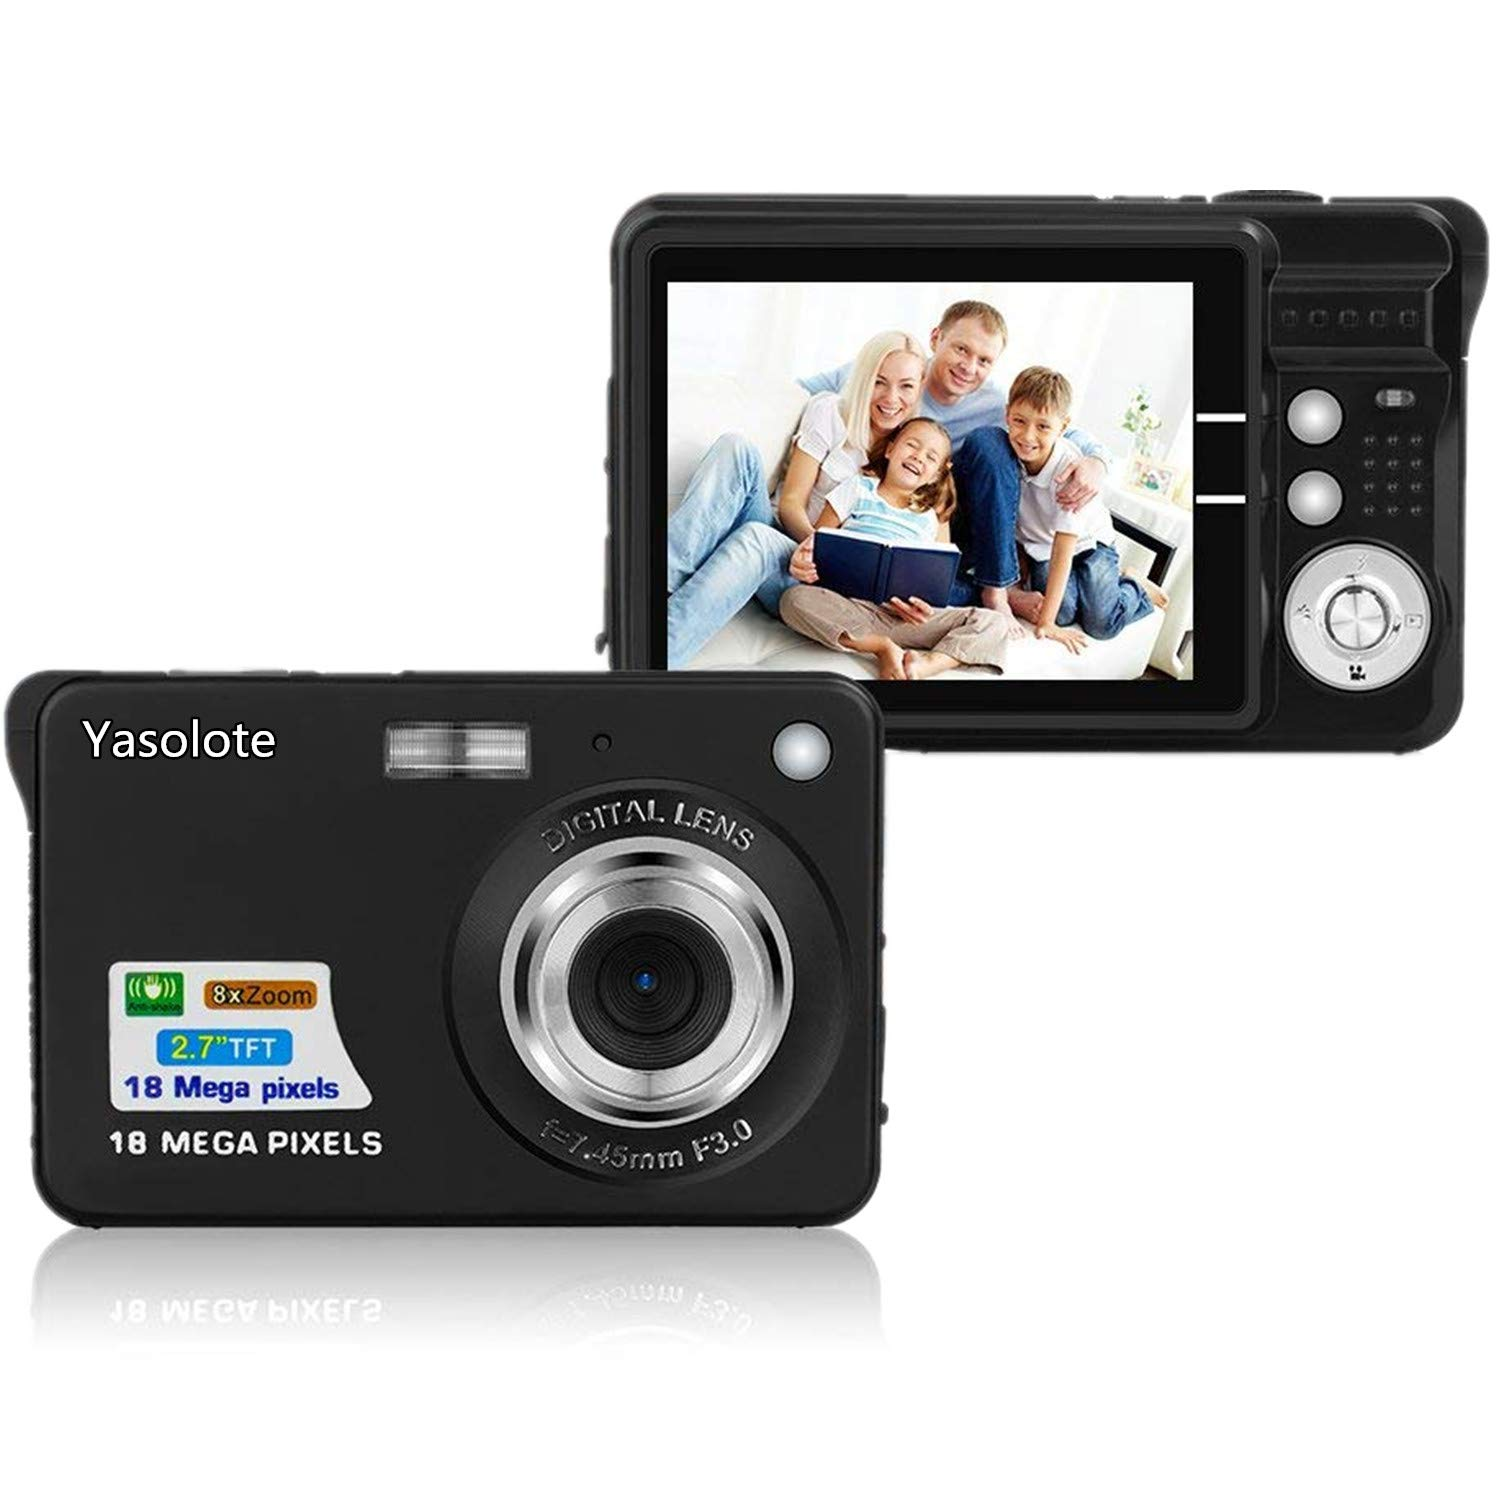 HD Mini Digital Camera with 2.7 Inch TFT LCD Display, Digital Point and Shoot Camera Black by Yasolote